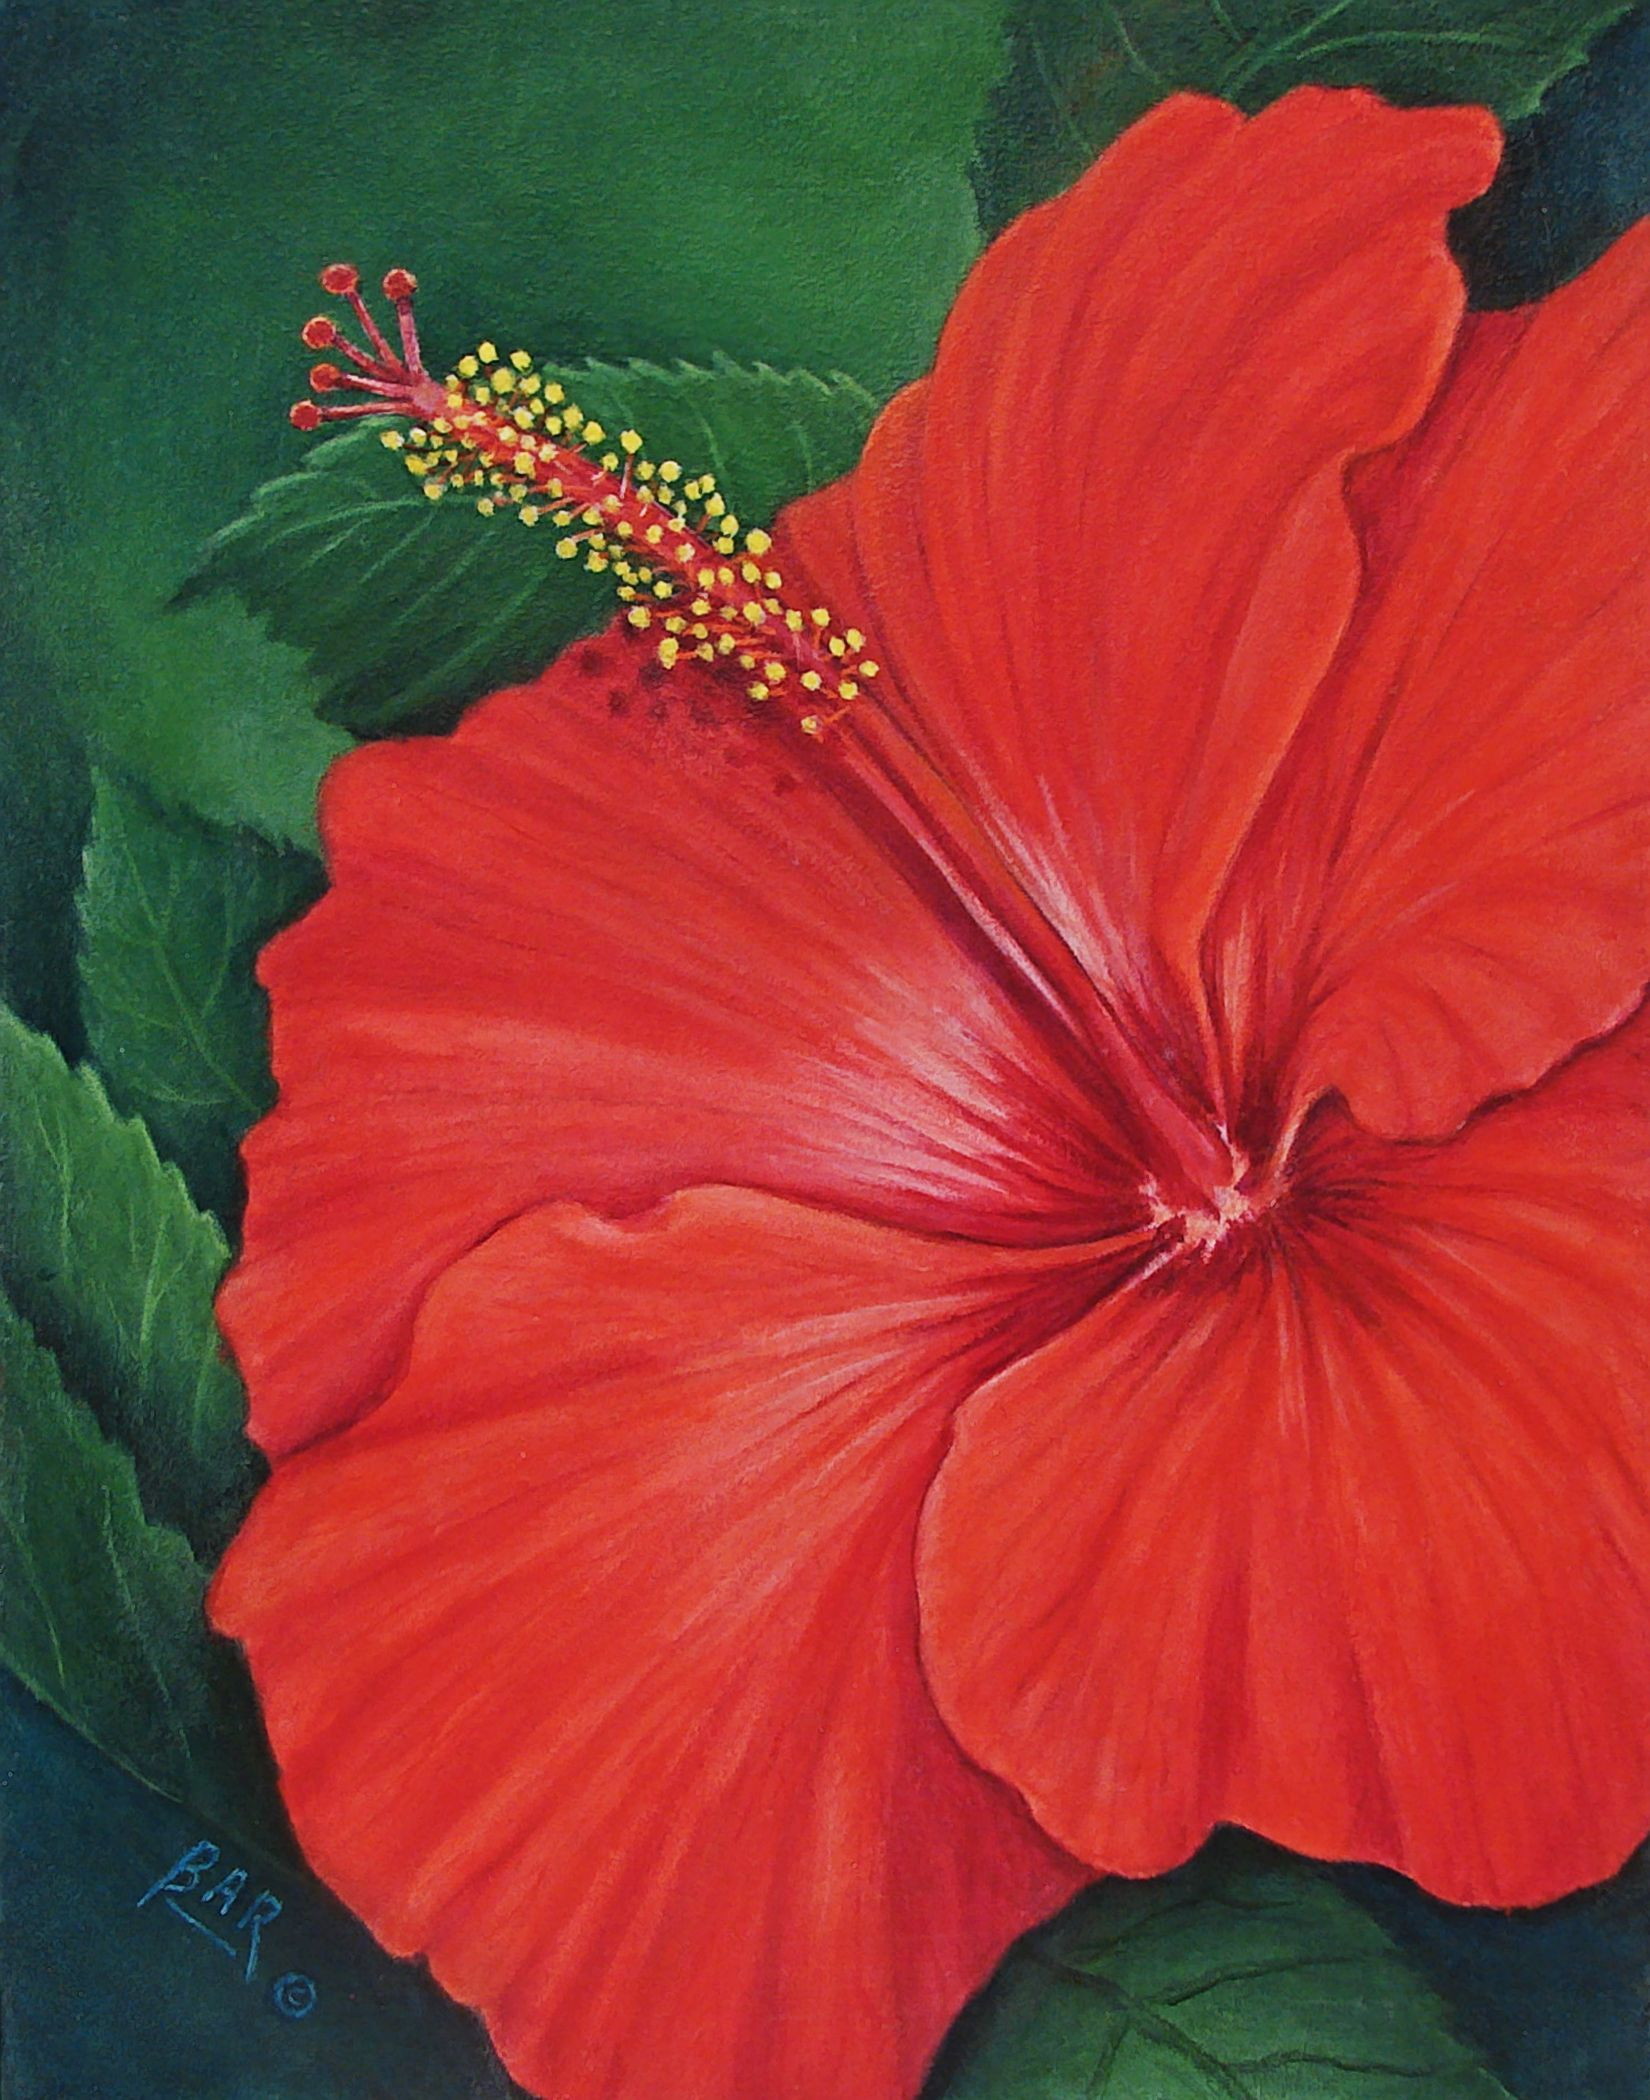 Red hibiscus painting by barbara ann robertson art by bar studio red hibiscus painting by barbara ann robertson izmirmasajfo